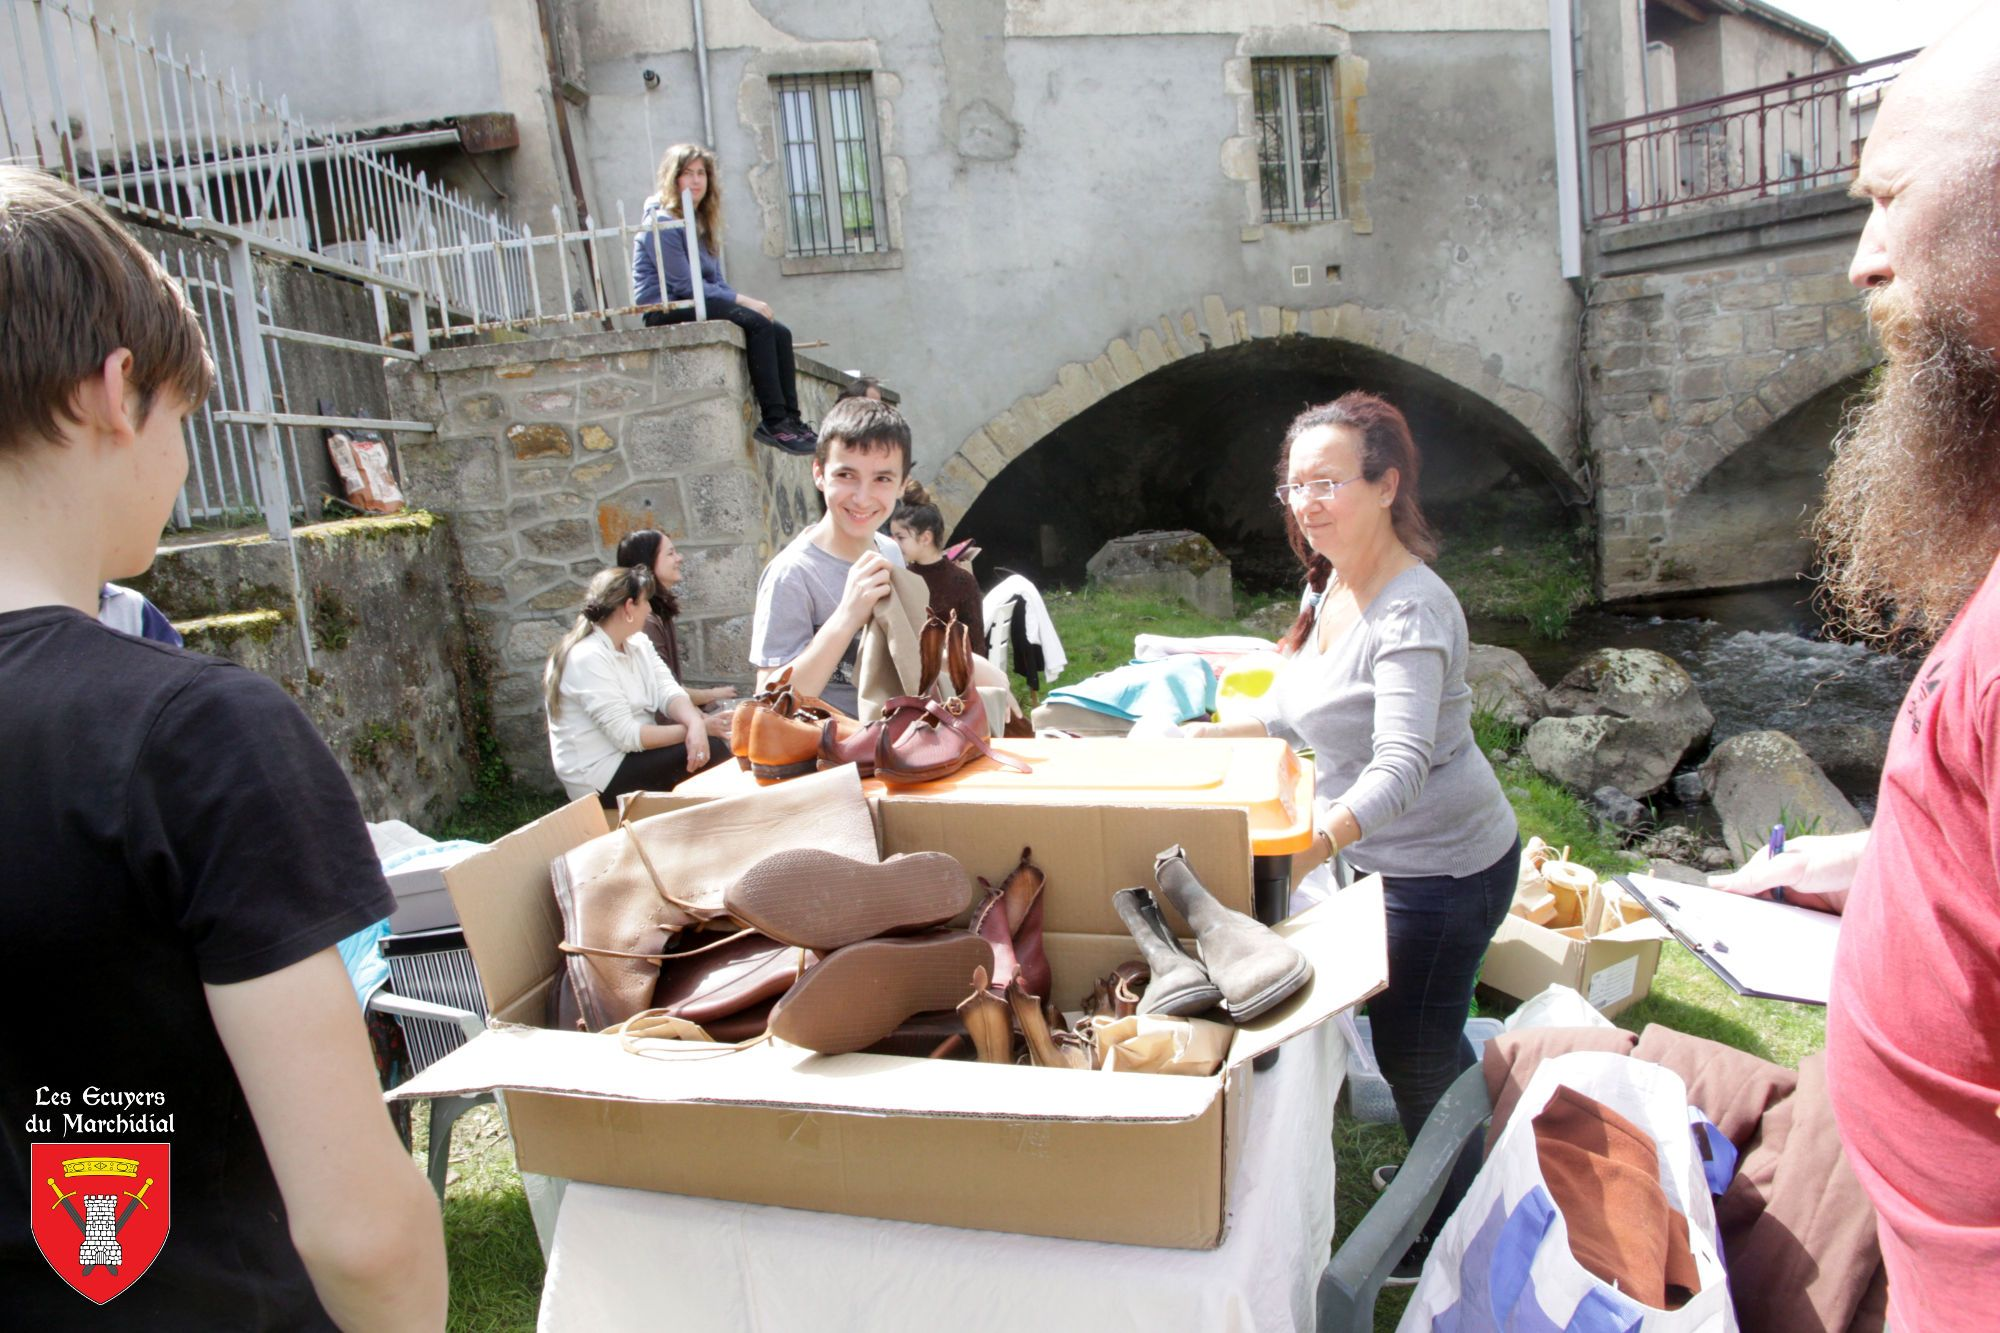 Preparation_Montferrand_2019-04-www.marchidial.fr_